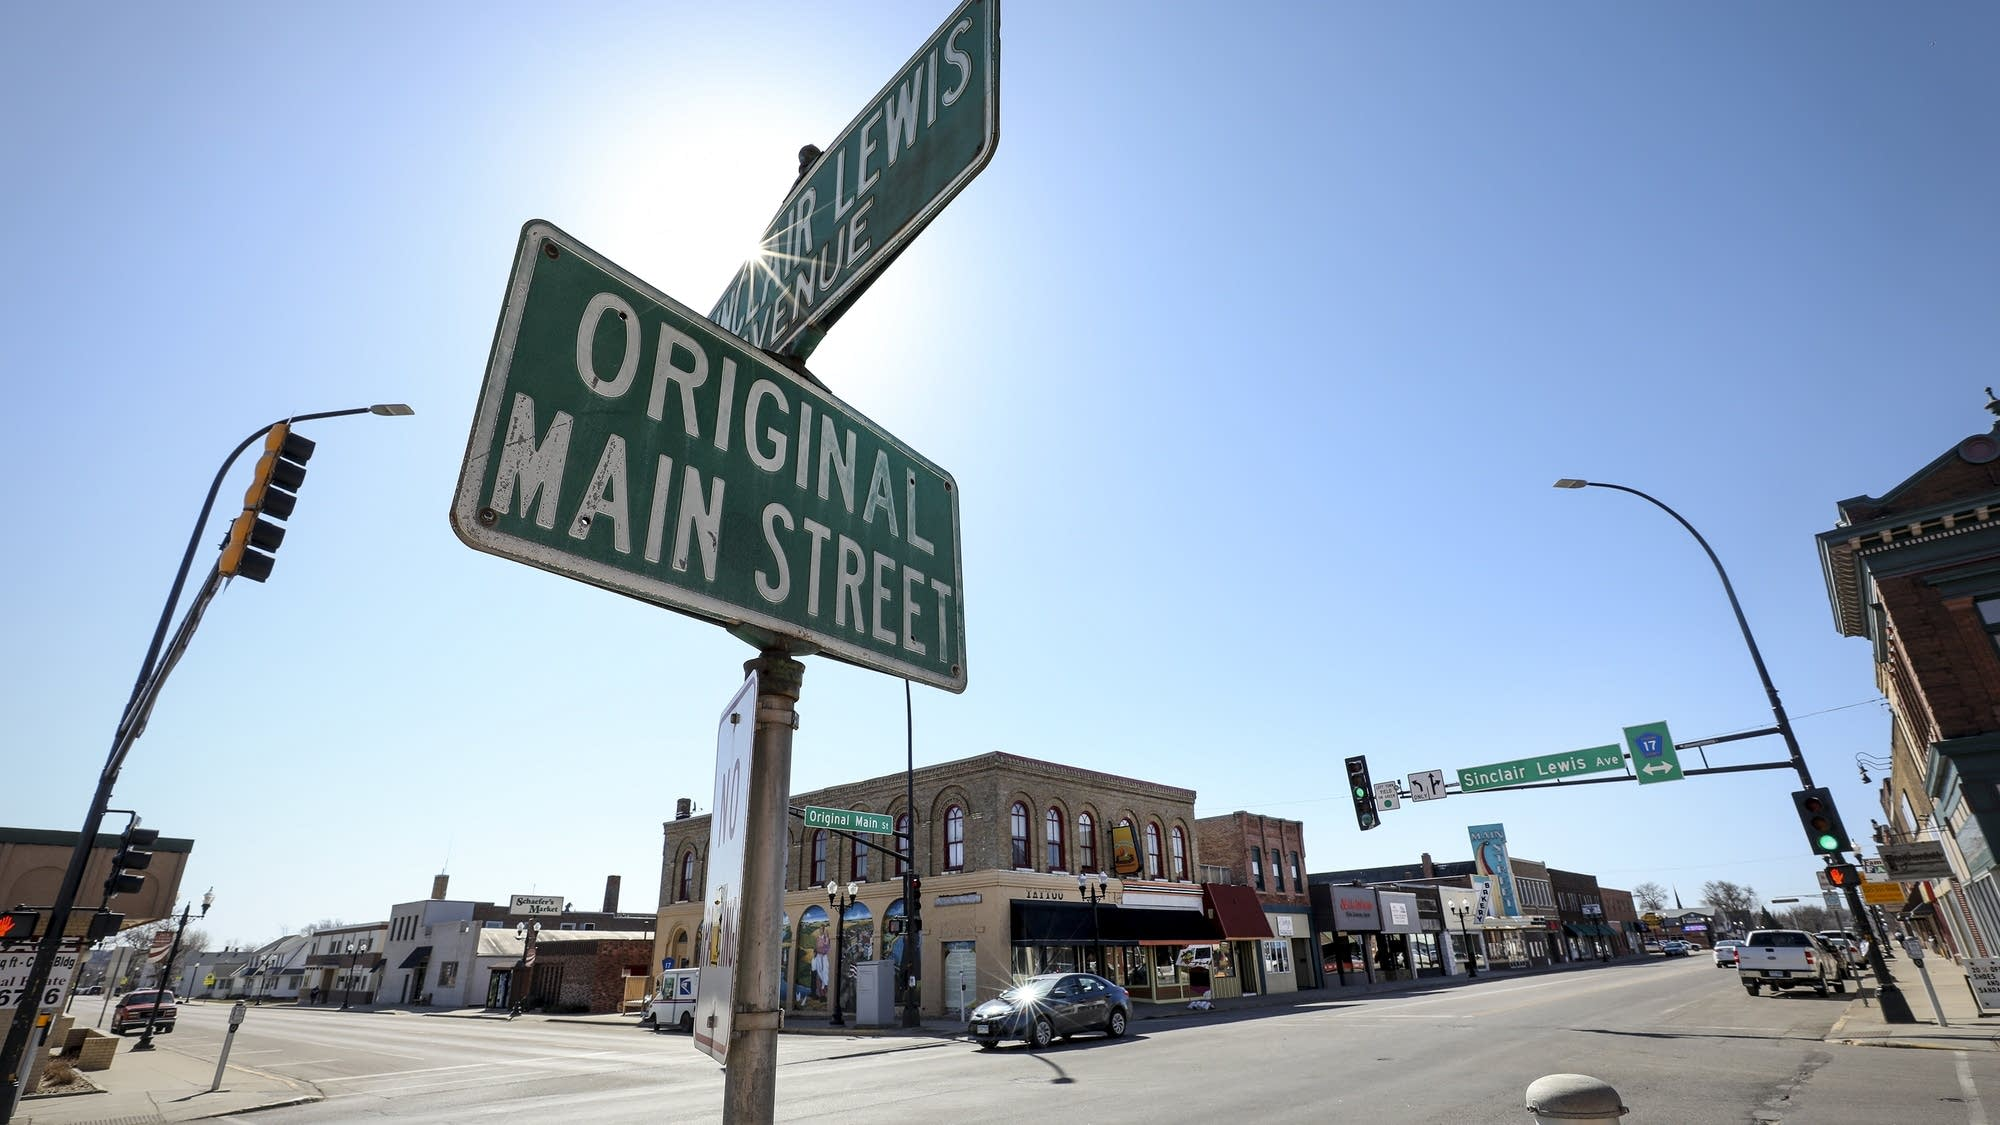 The corner of Sinclair Lewis Avenue and Main Street